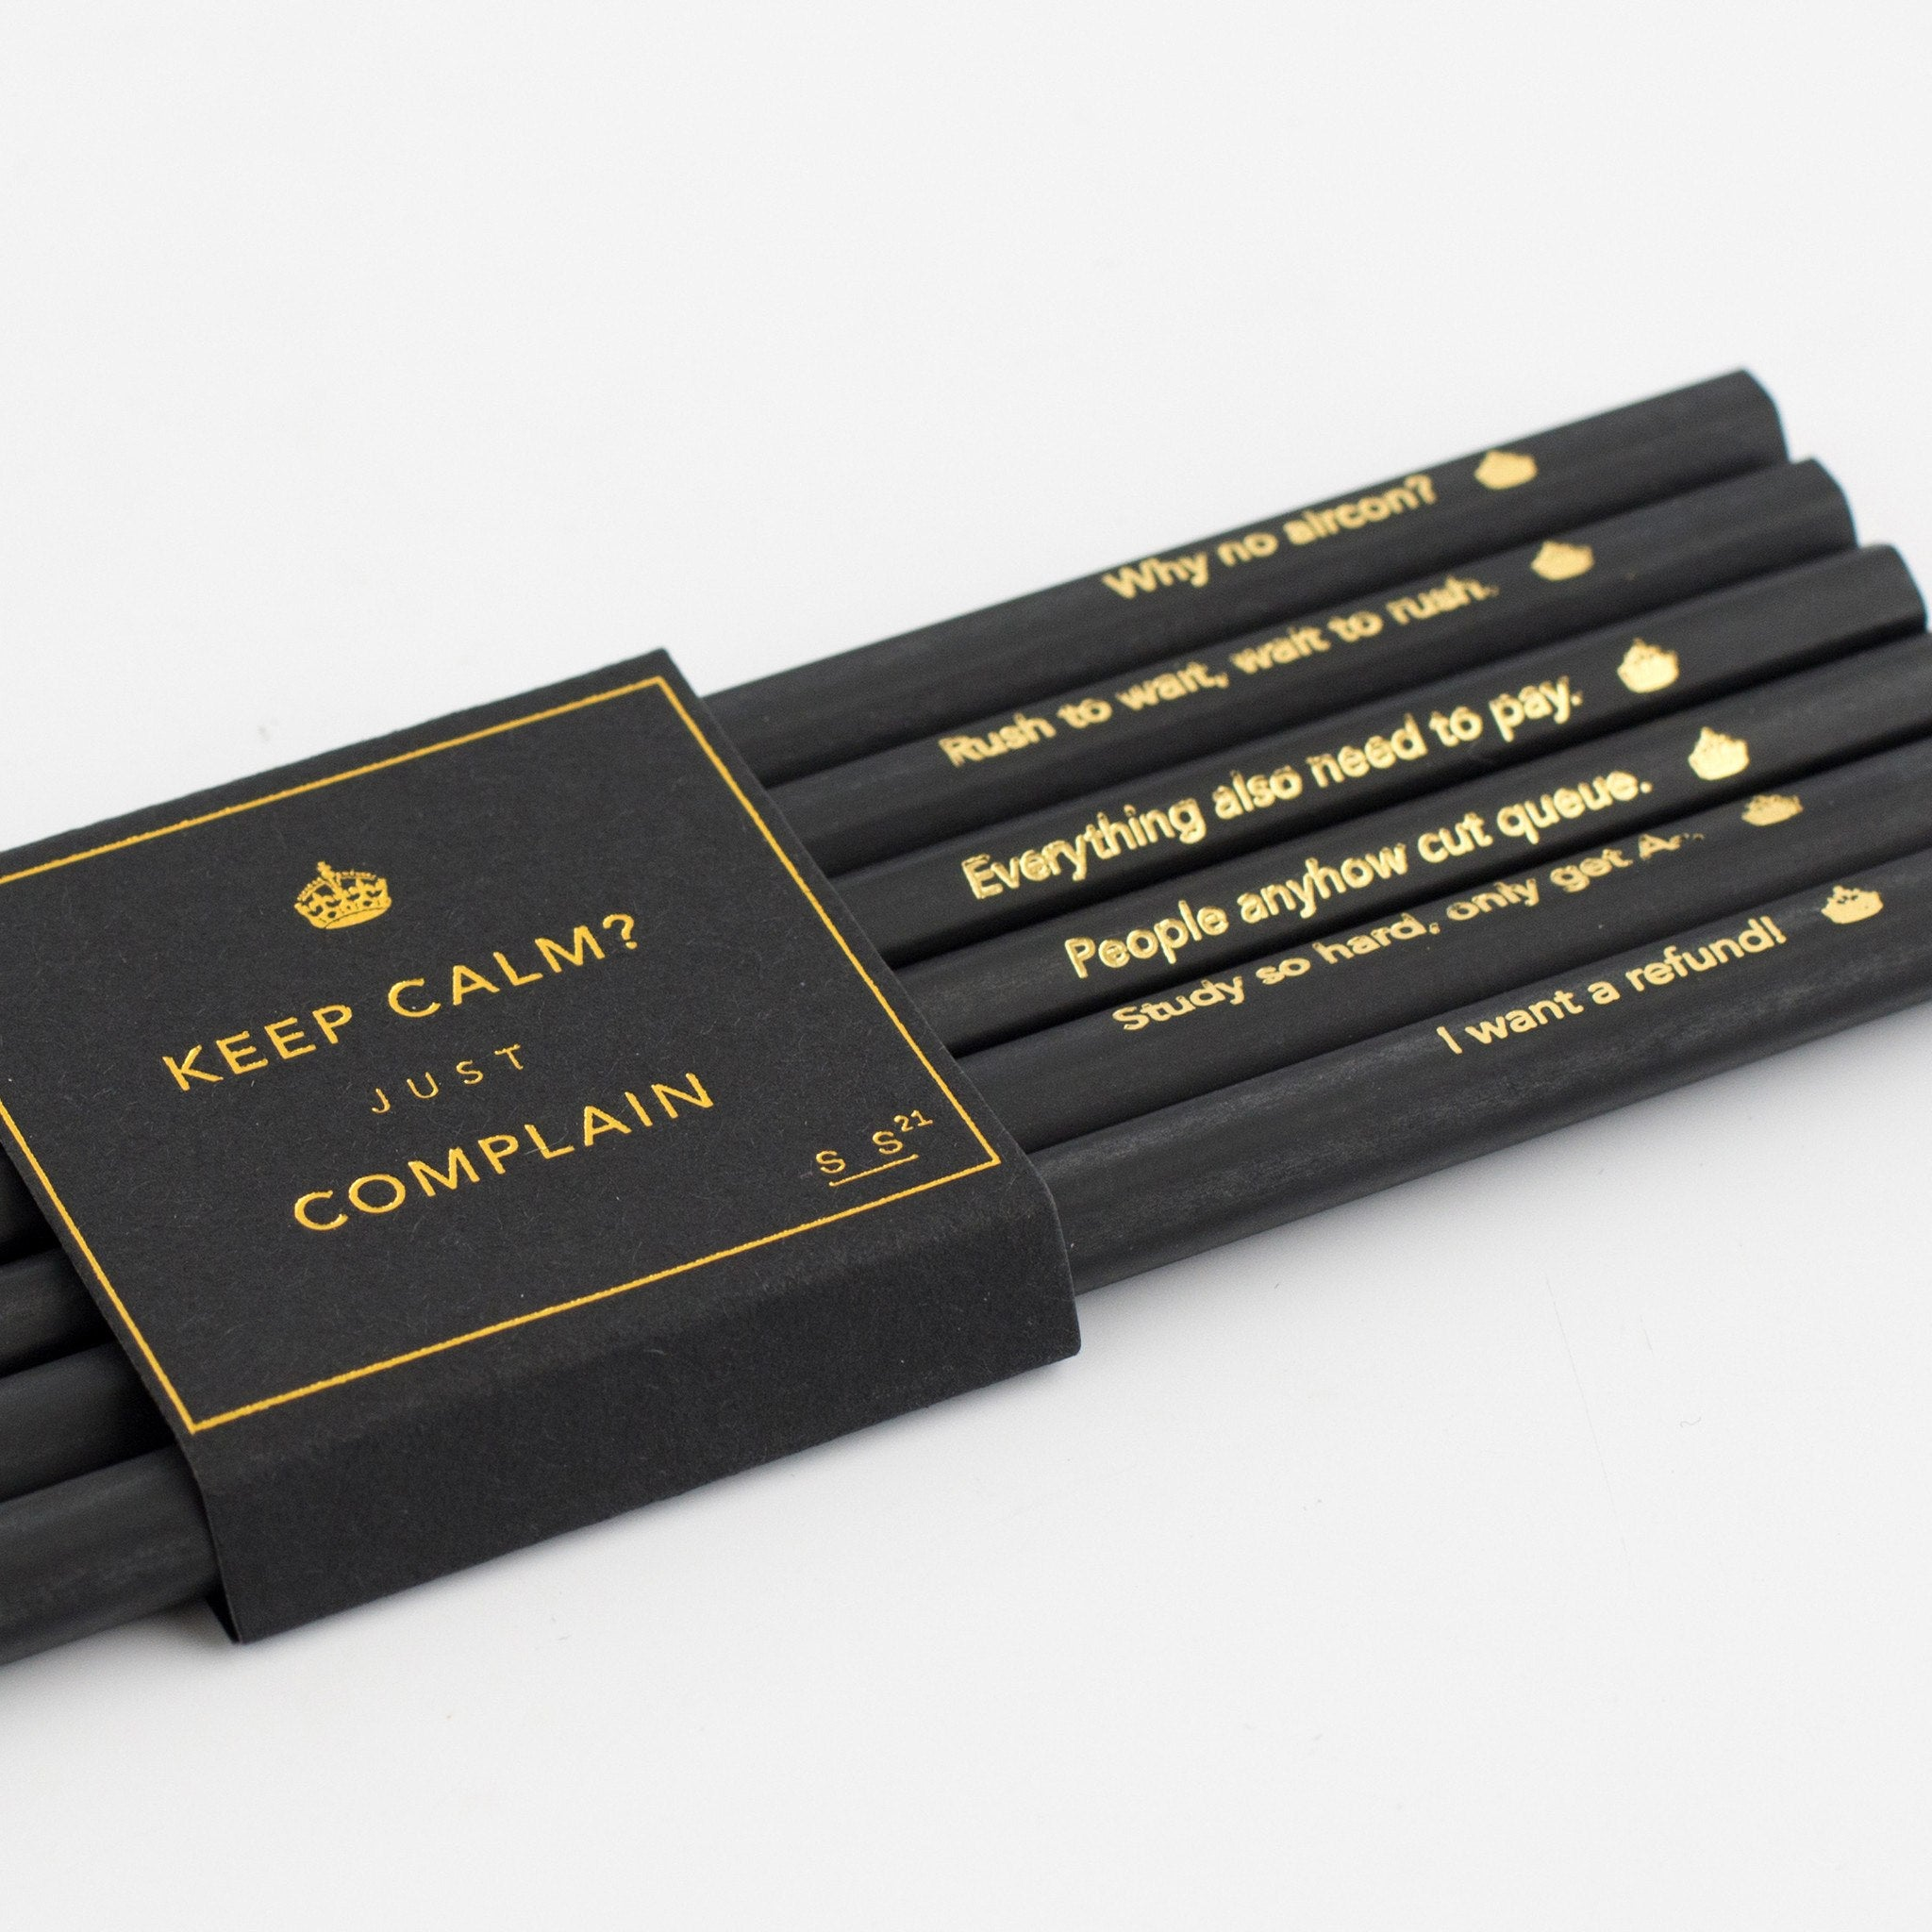 SS21 - Complain King Pencils - Stationery - STUCKSHOP - Souvenirs from Singapore